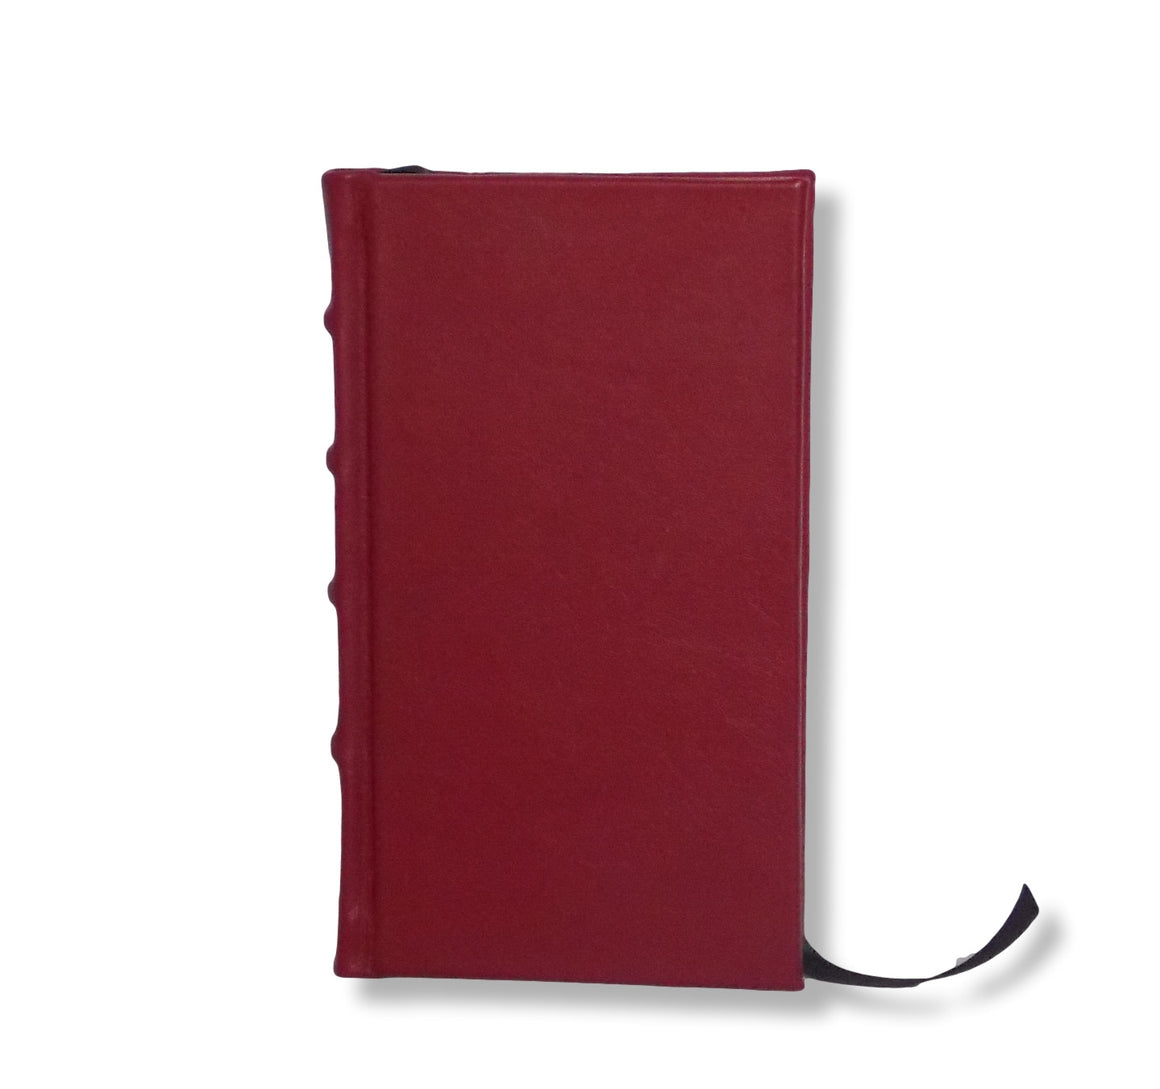 Slimline Journal - Red